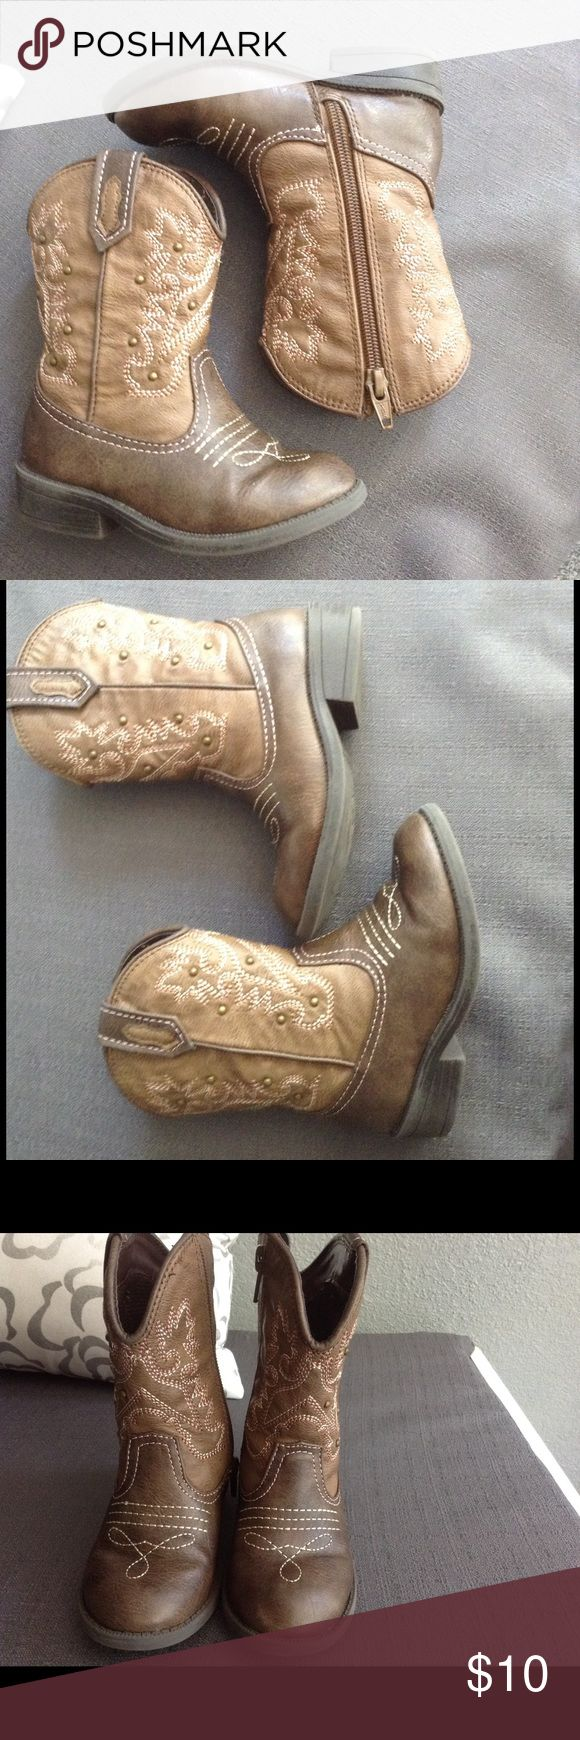 Cute toddler girl cowboy boots size 8 Gently used in very good condition..no visible flaws Cherokee Shoes Heeled Boots